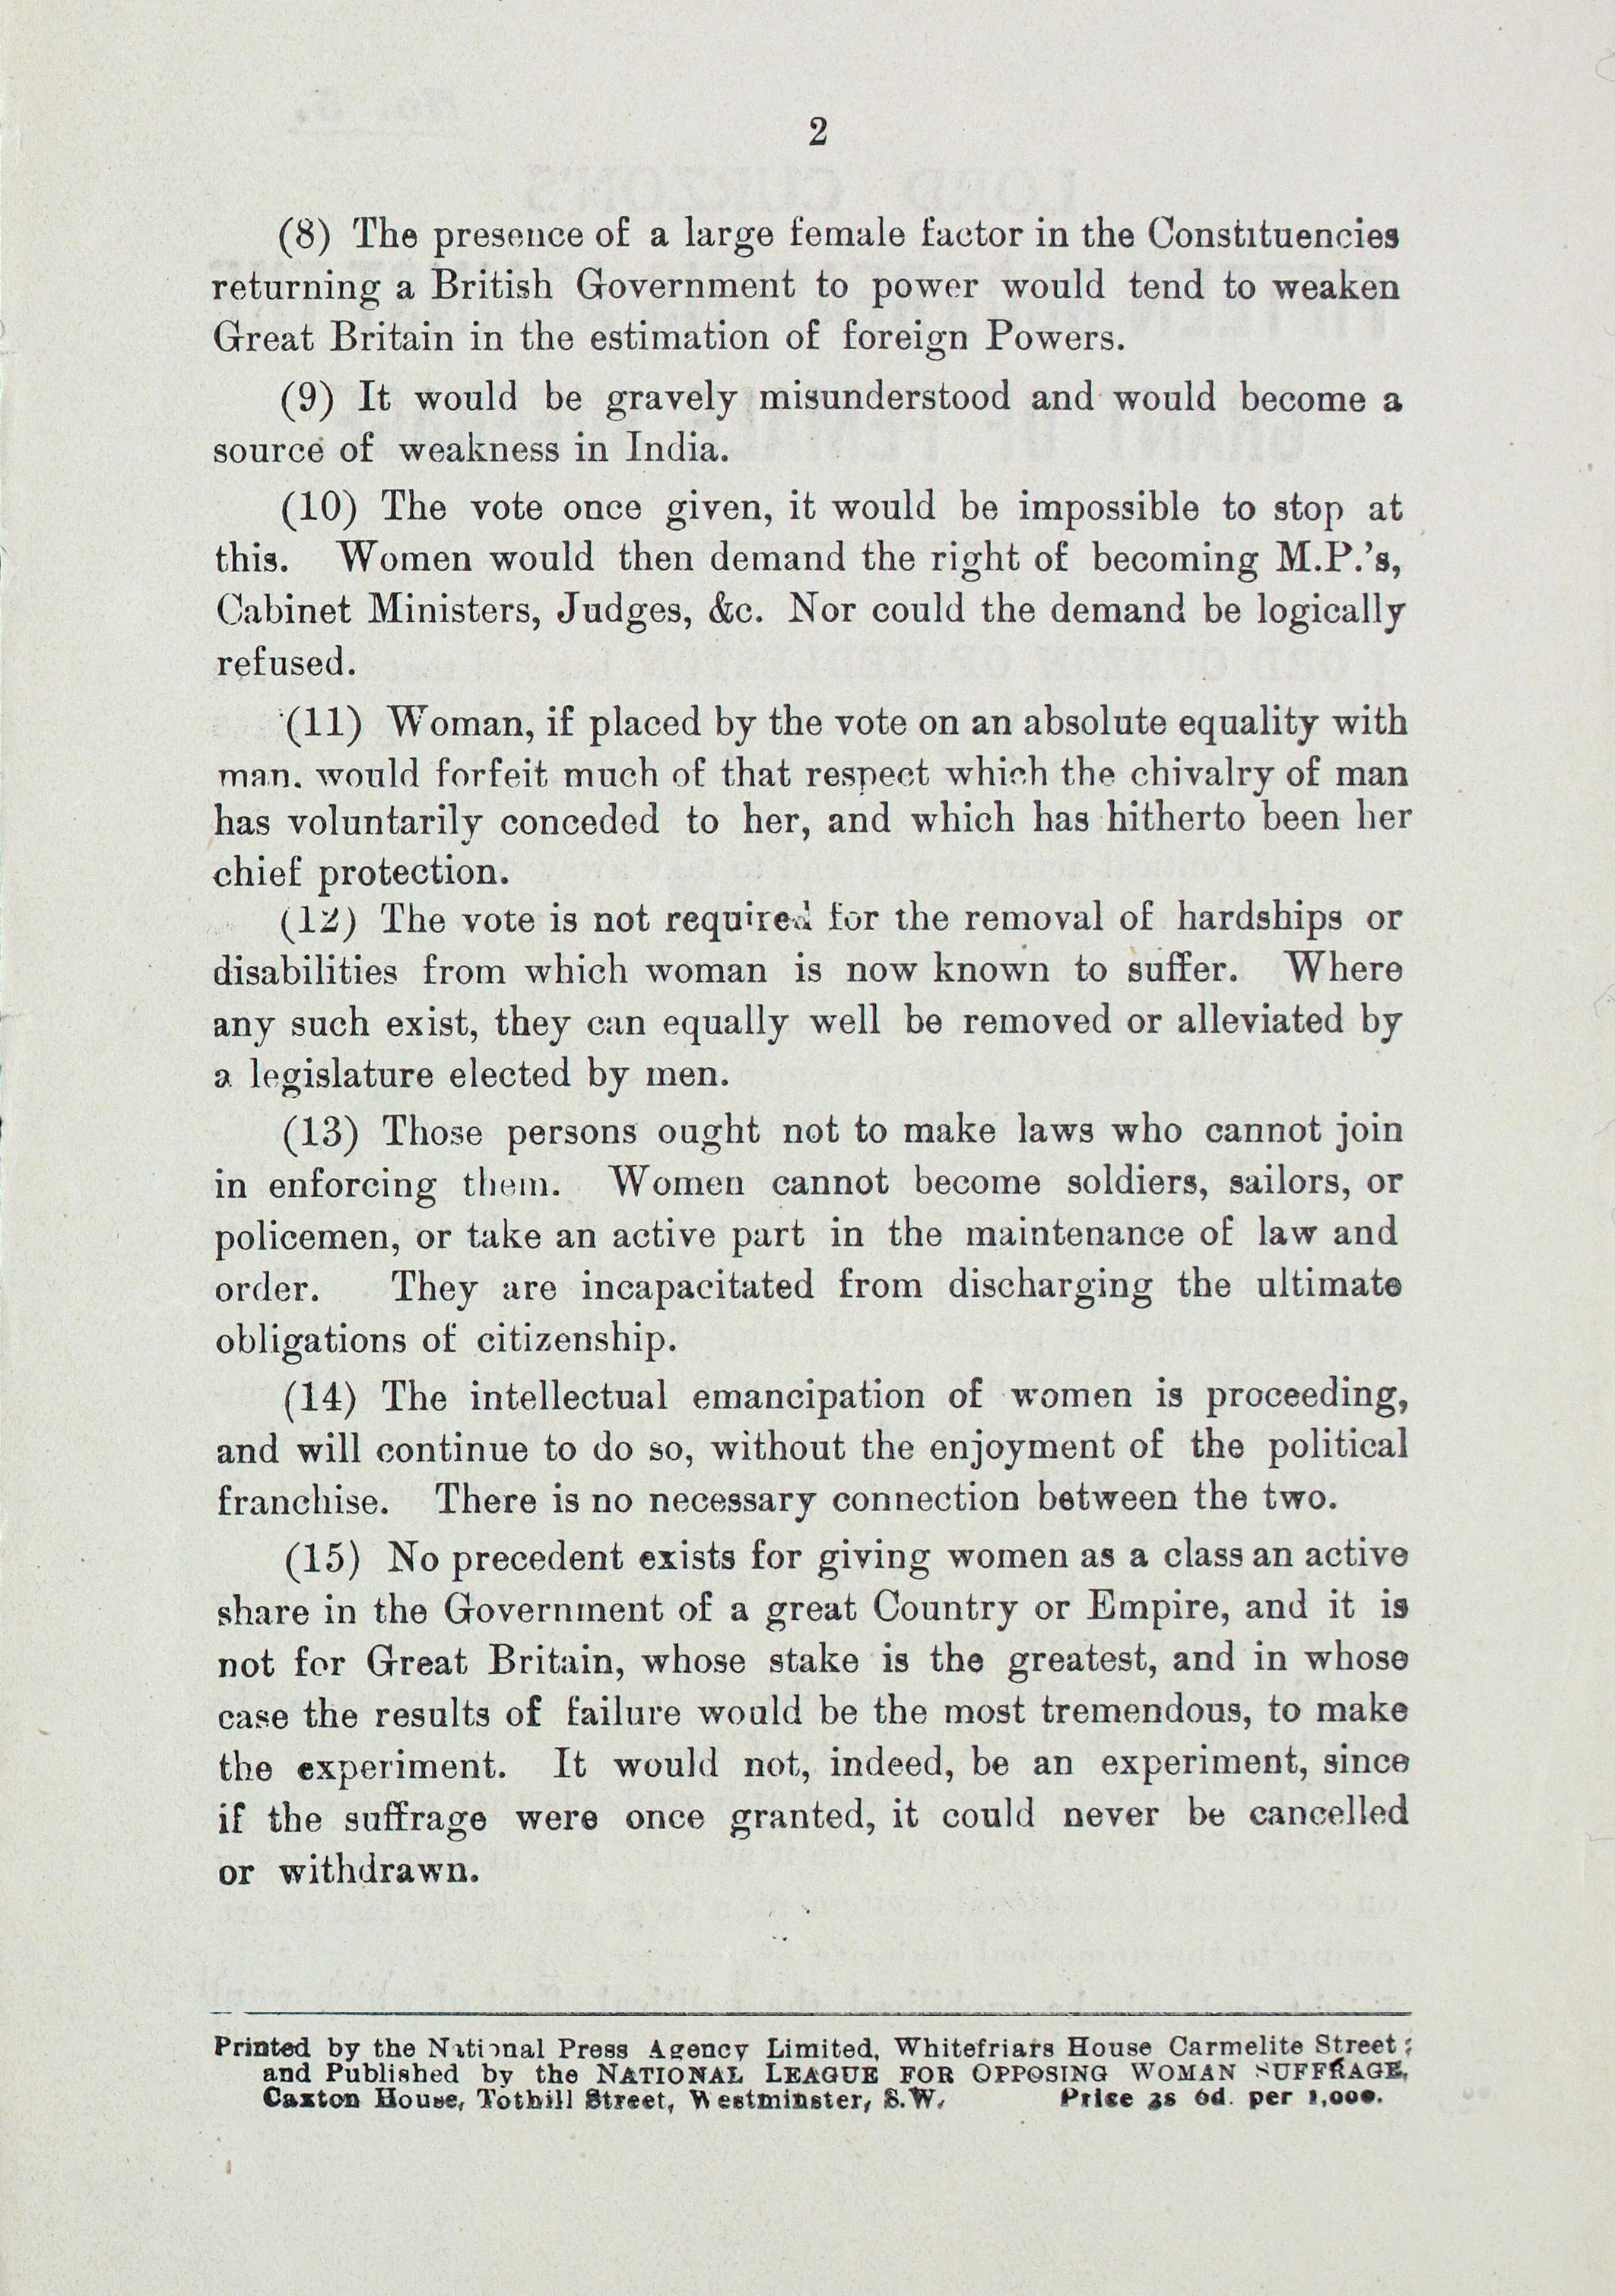 Extract from printed pamphlet outlining arguments against female suffrage